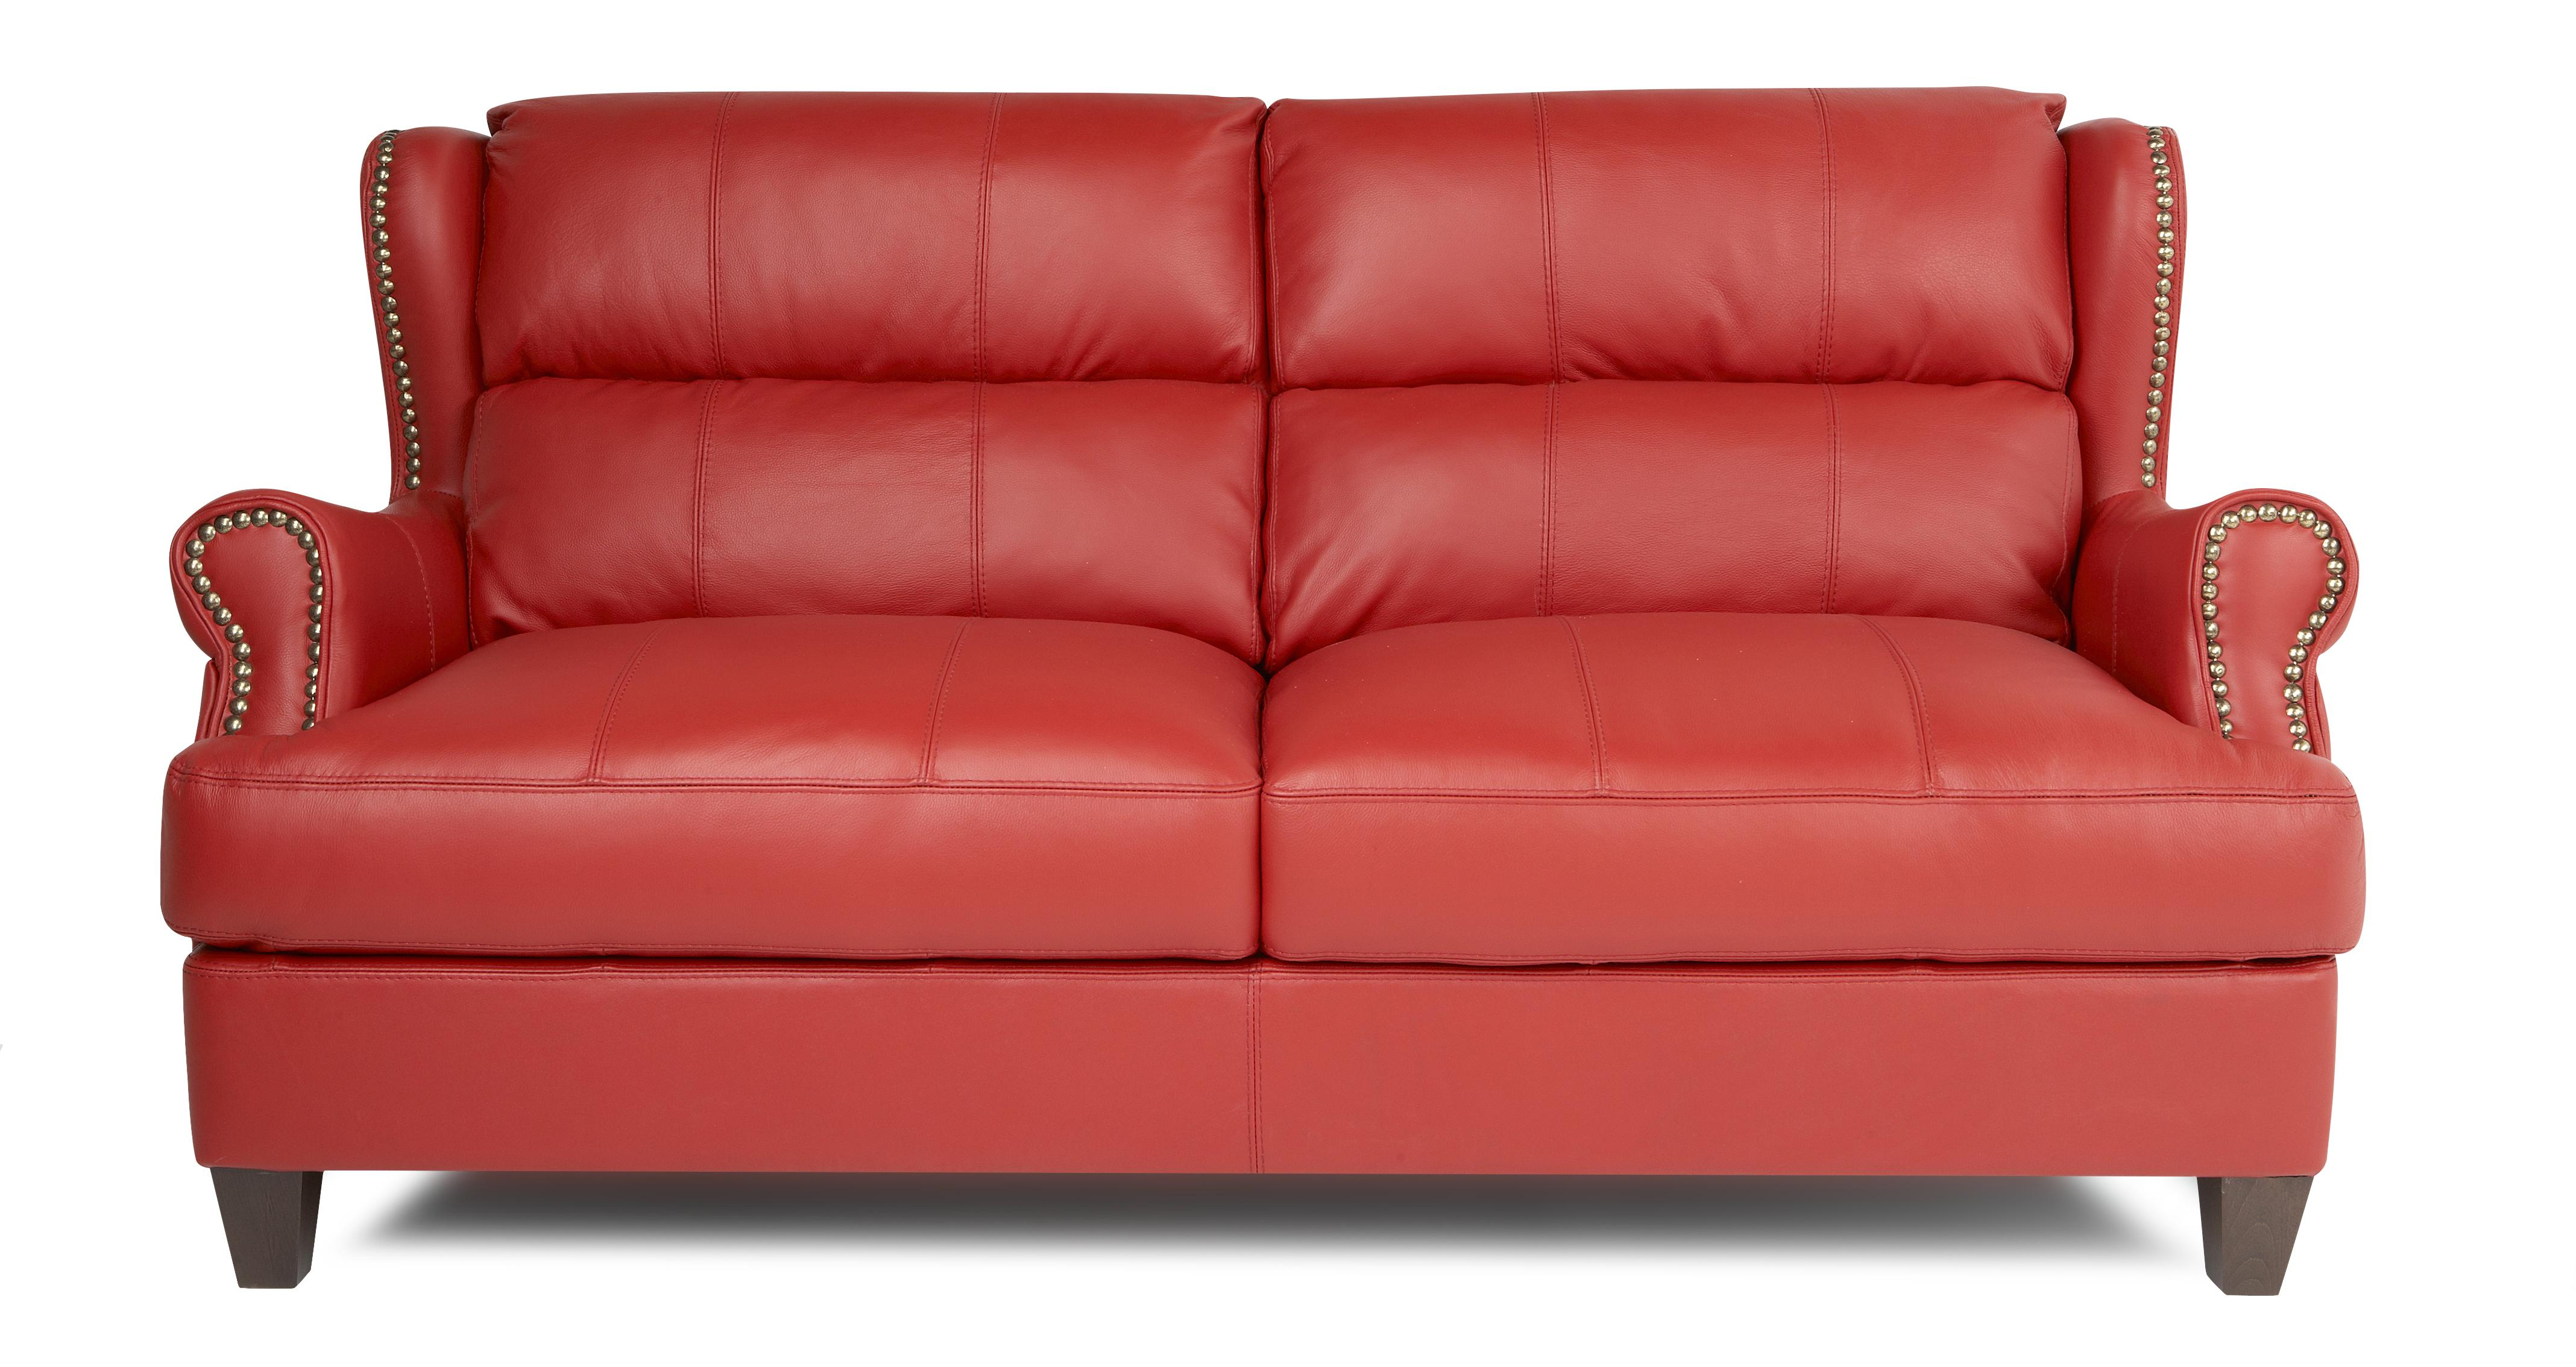 DFS SQUIRE SUITE ENZO RED LEATHER SETTEE 3 SEATER SOFA EBay